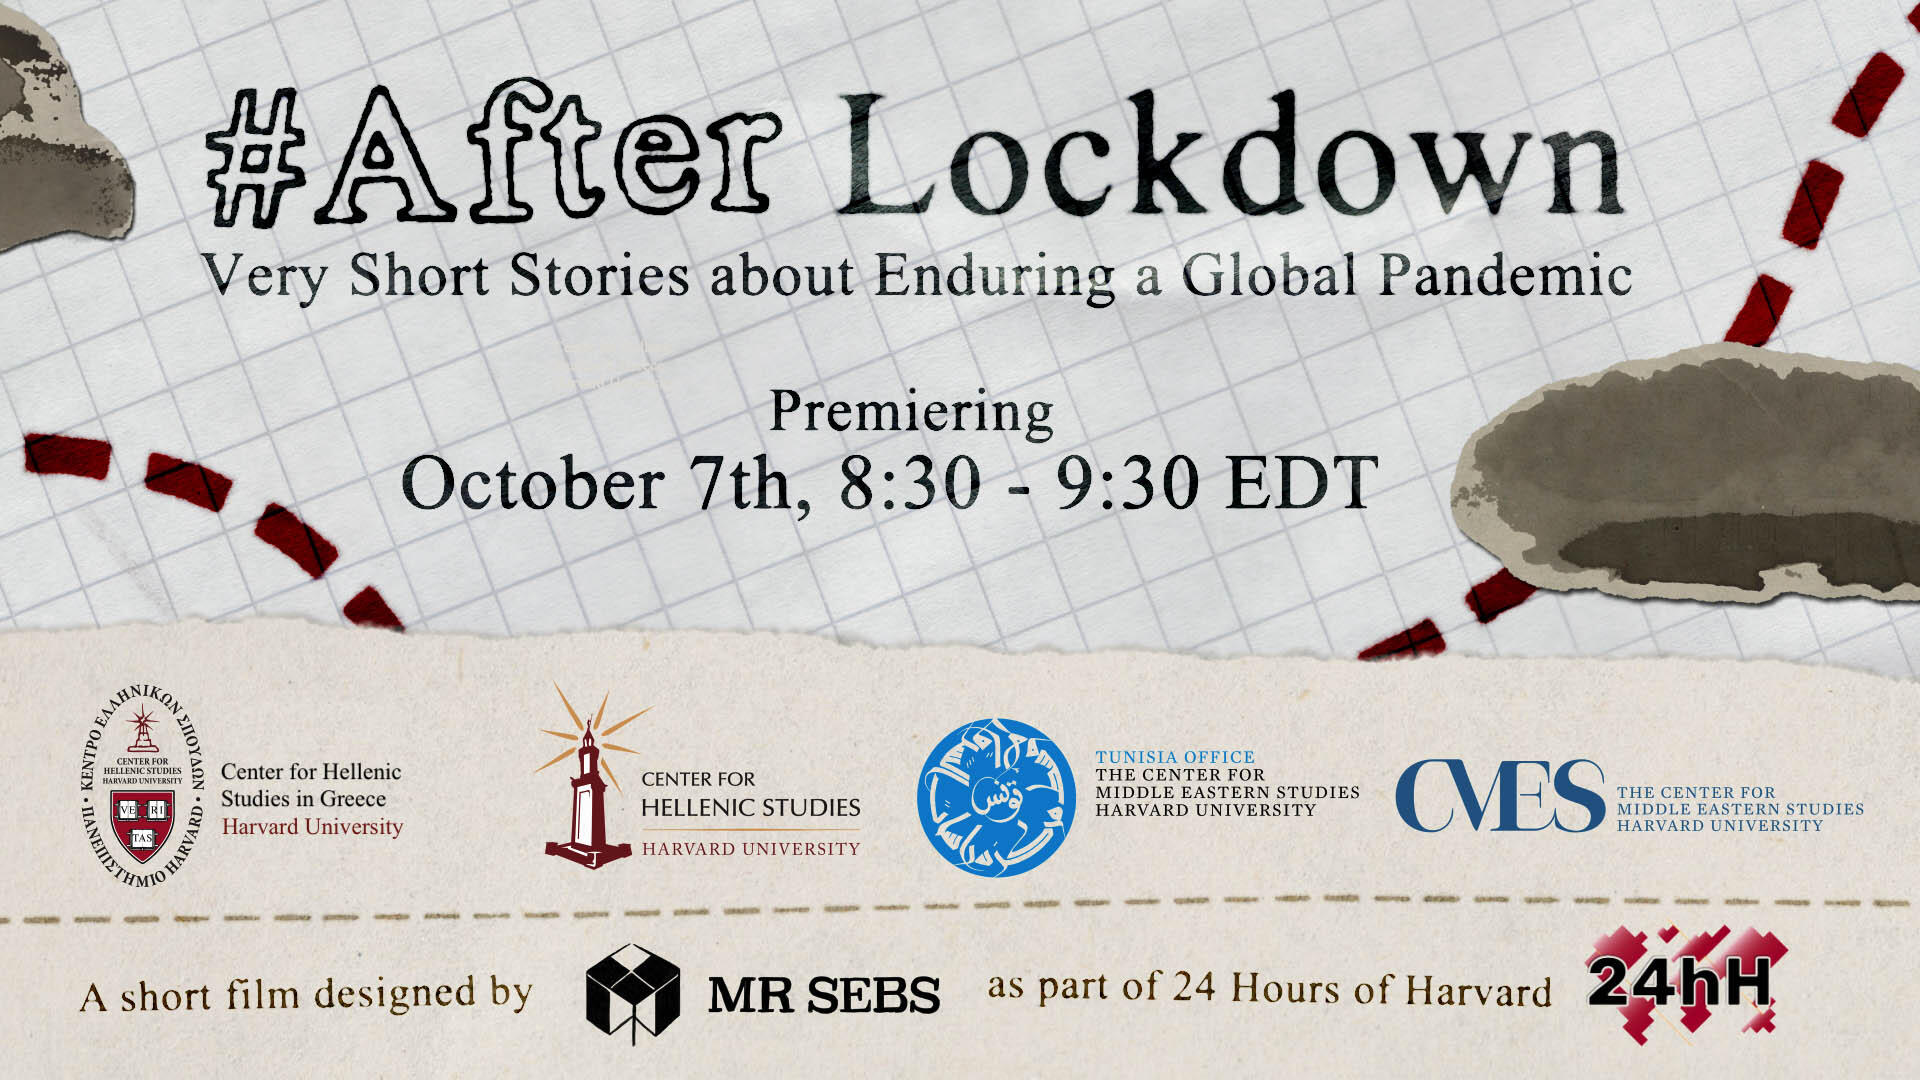 Poster of the After Lockdown film premiere